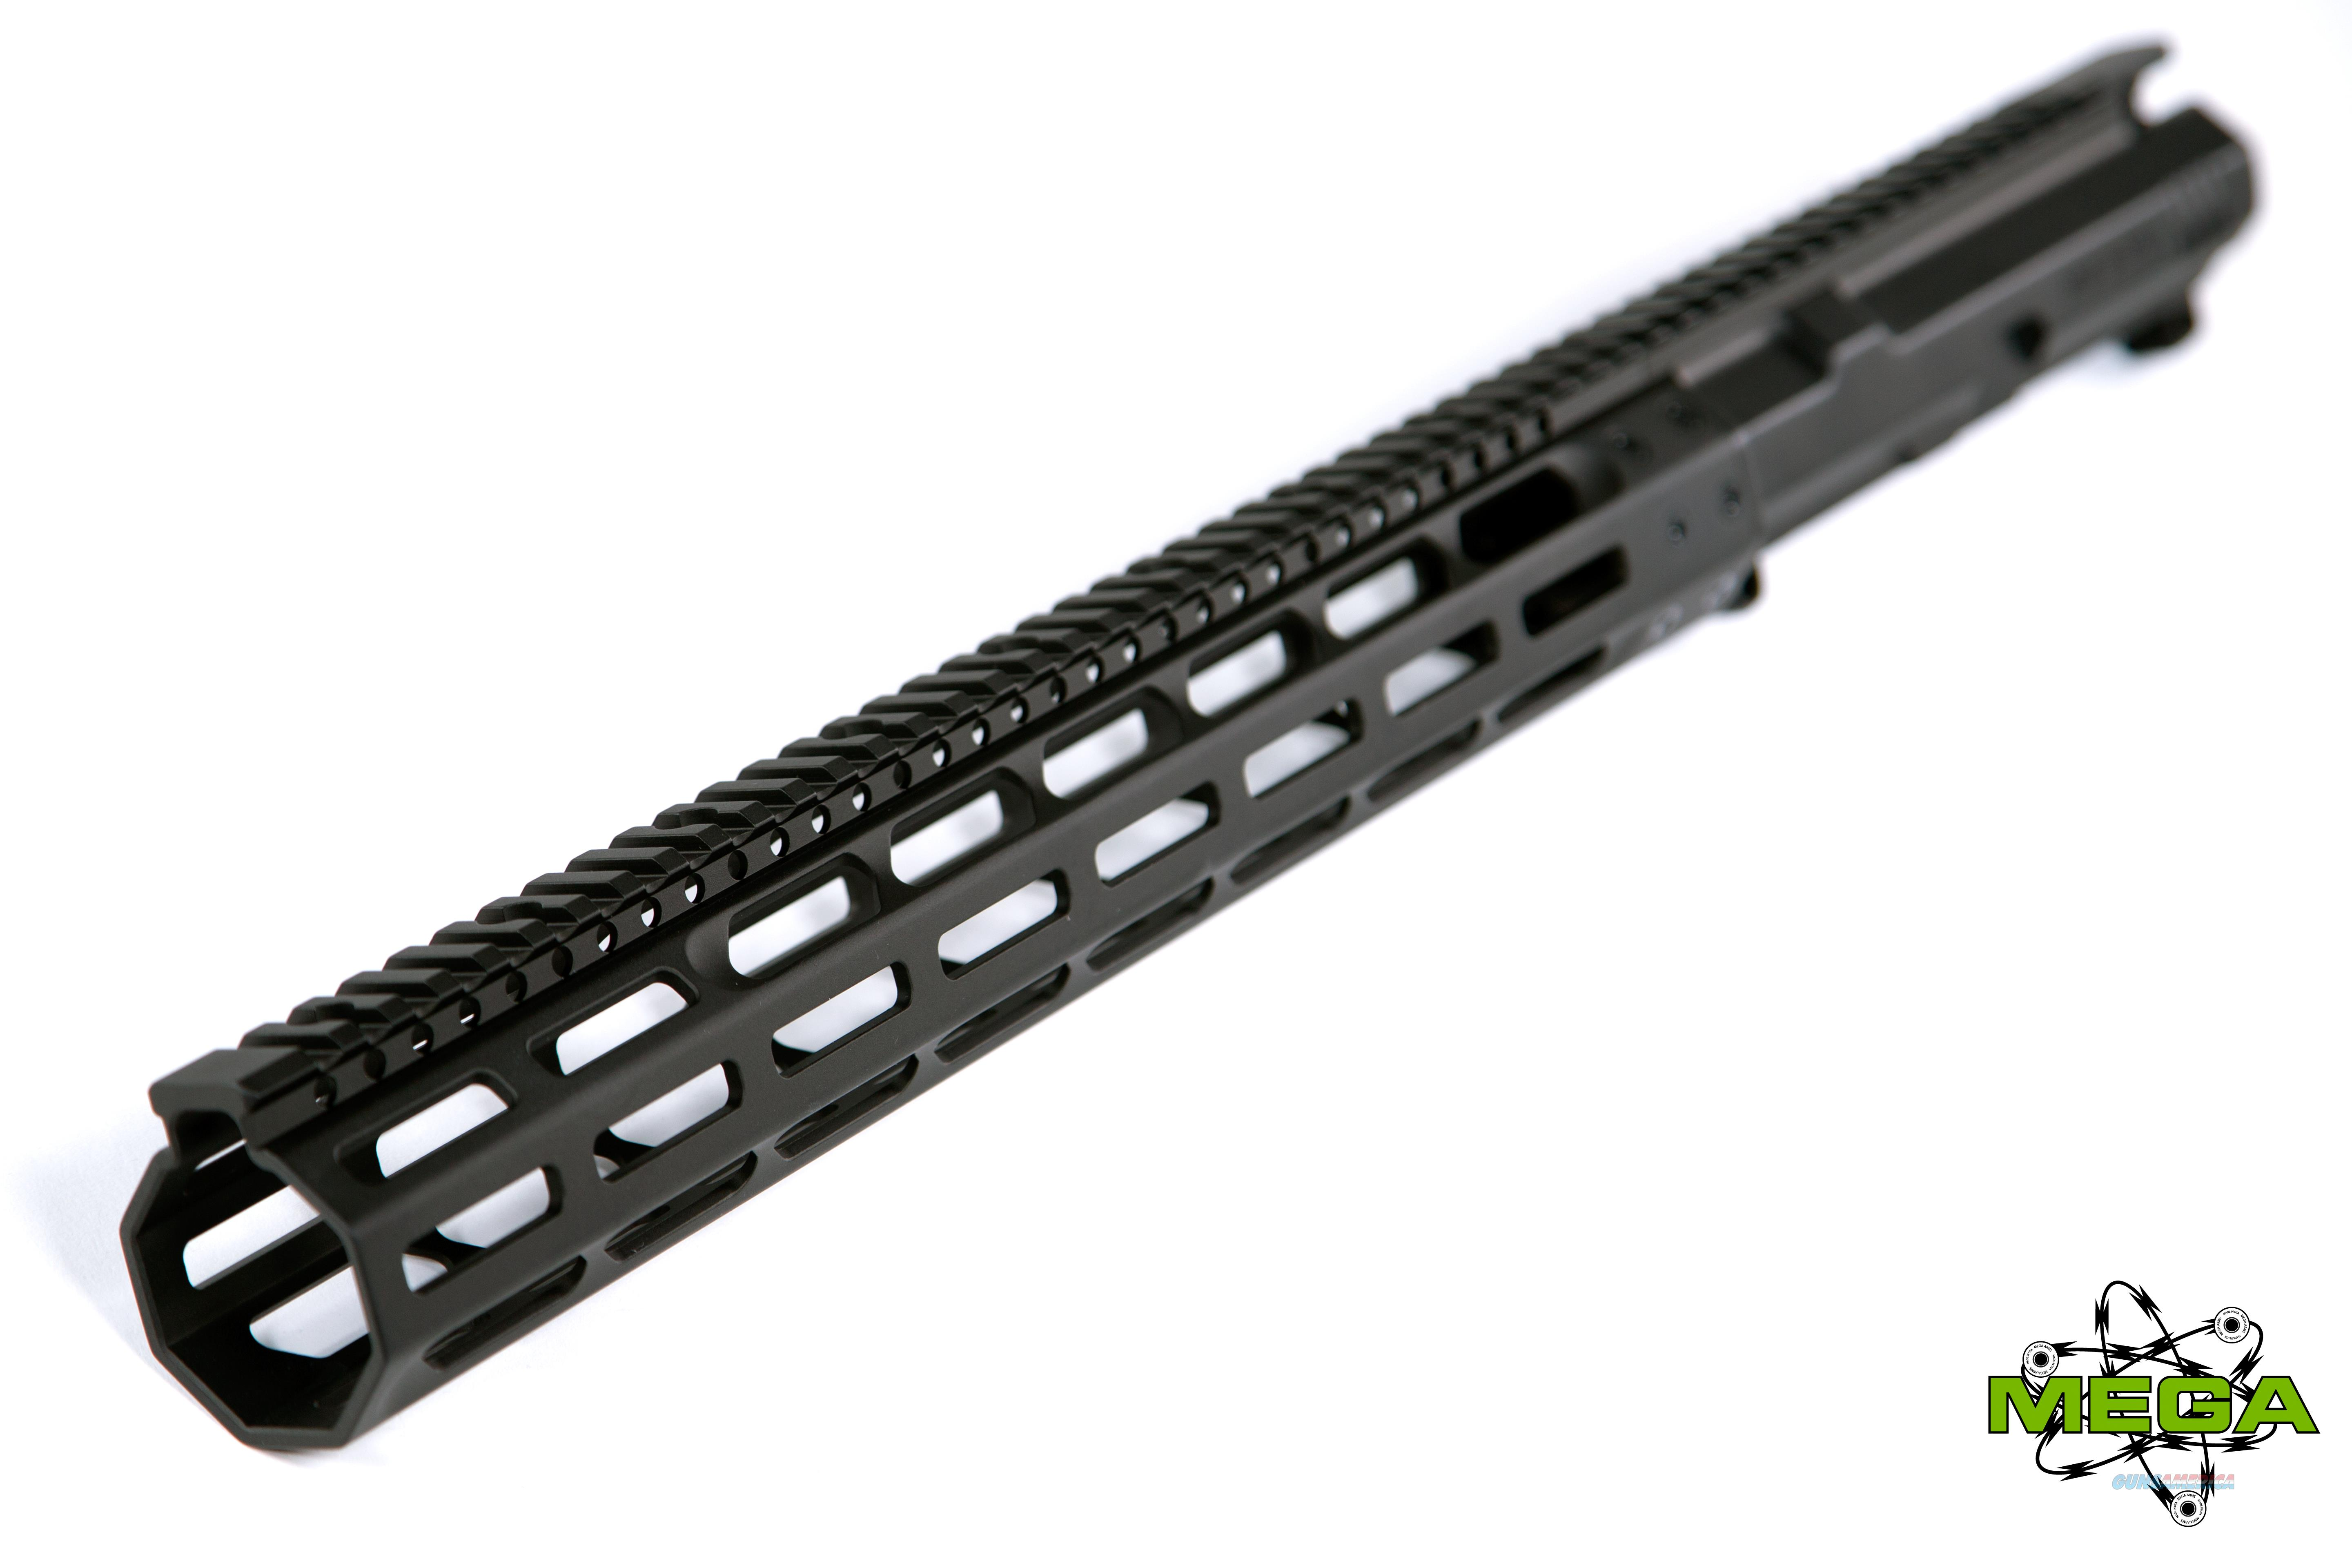 "Mega Arms AR15 M-LOK Rifle Length (12"") Upper - 25% off MSRP!  Non-Guns > Gun Parts > M16-AR15 > Upper Only"